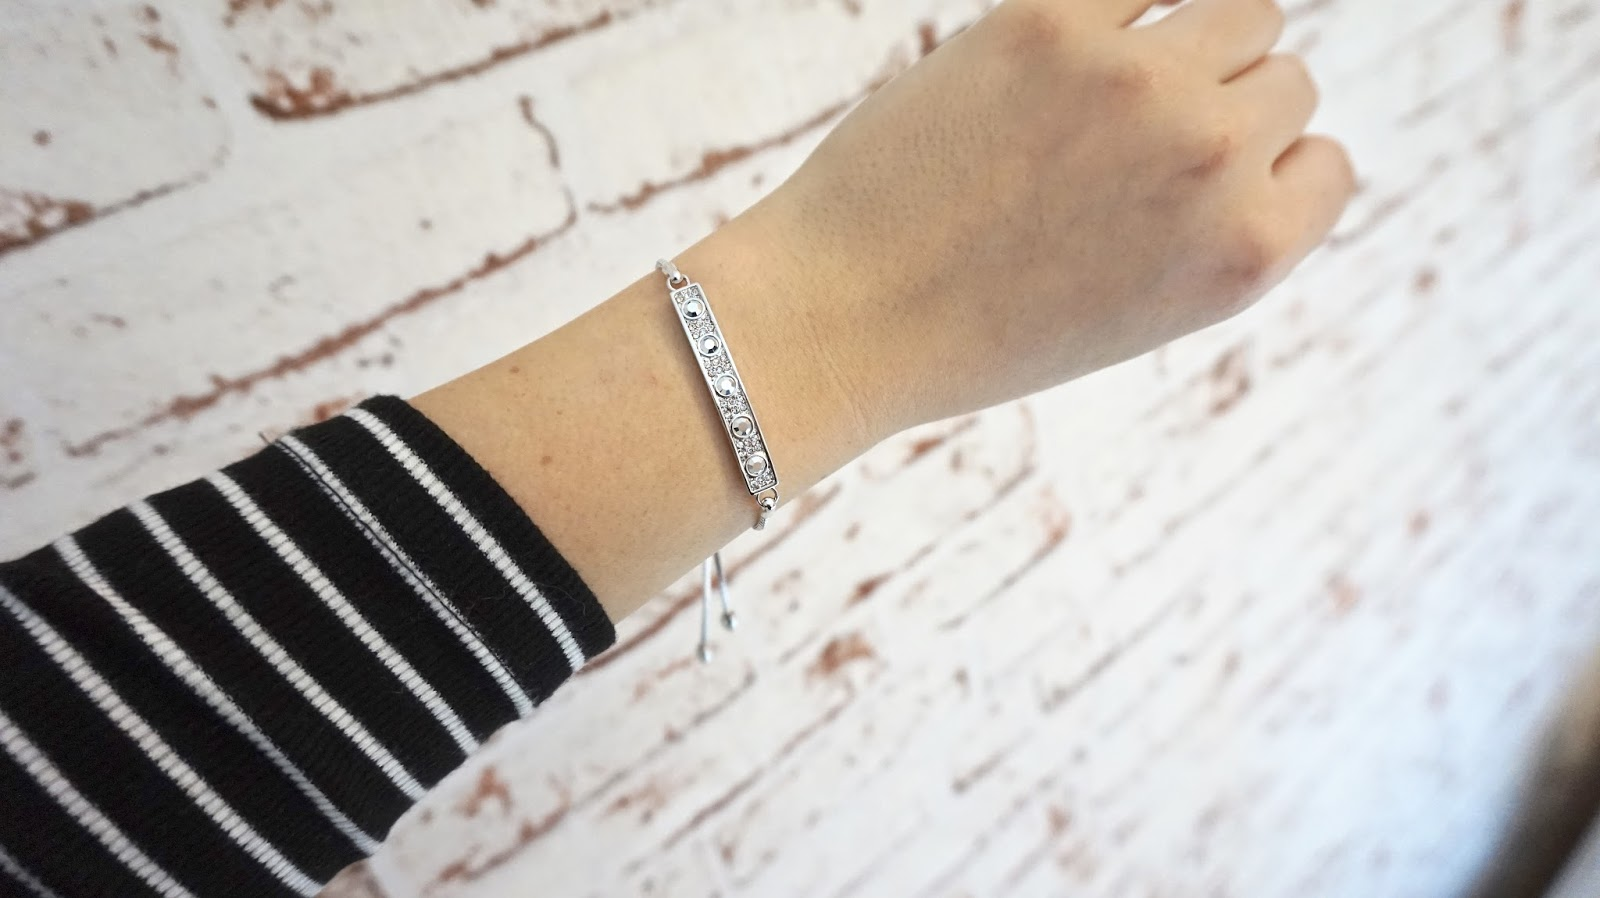 See my lovely Buckley London Friendship bracelet here